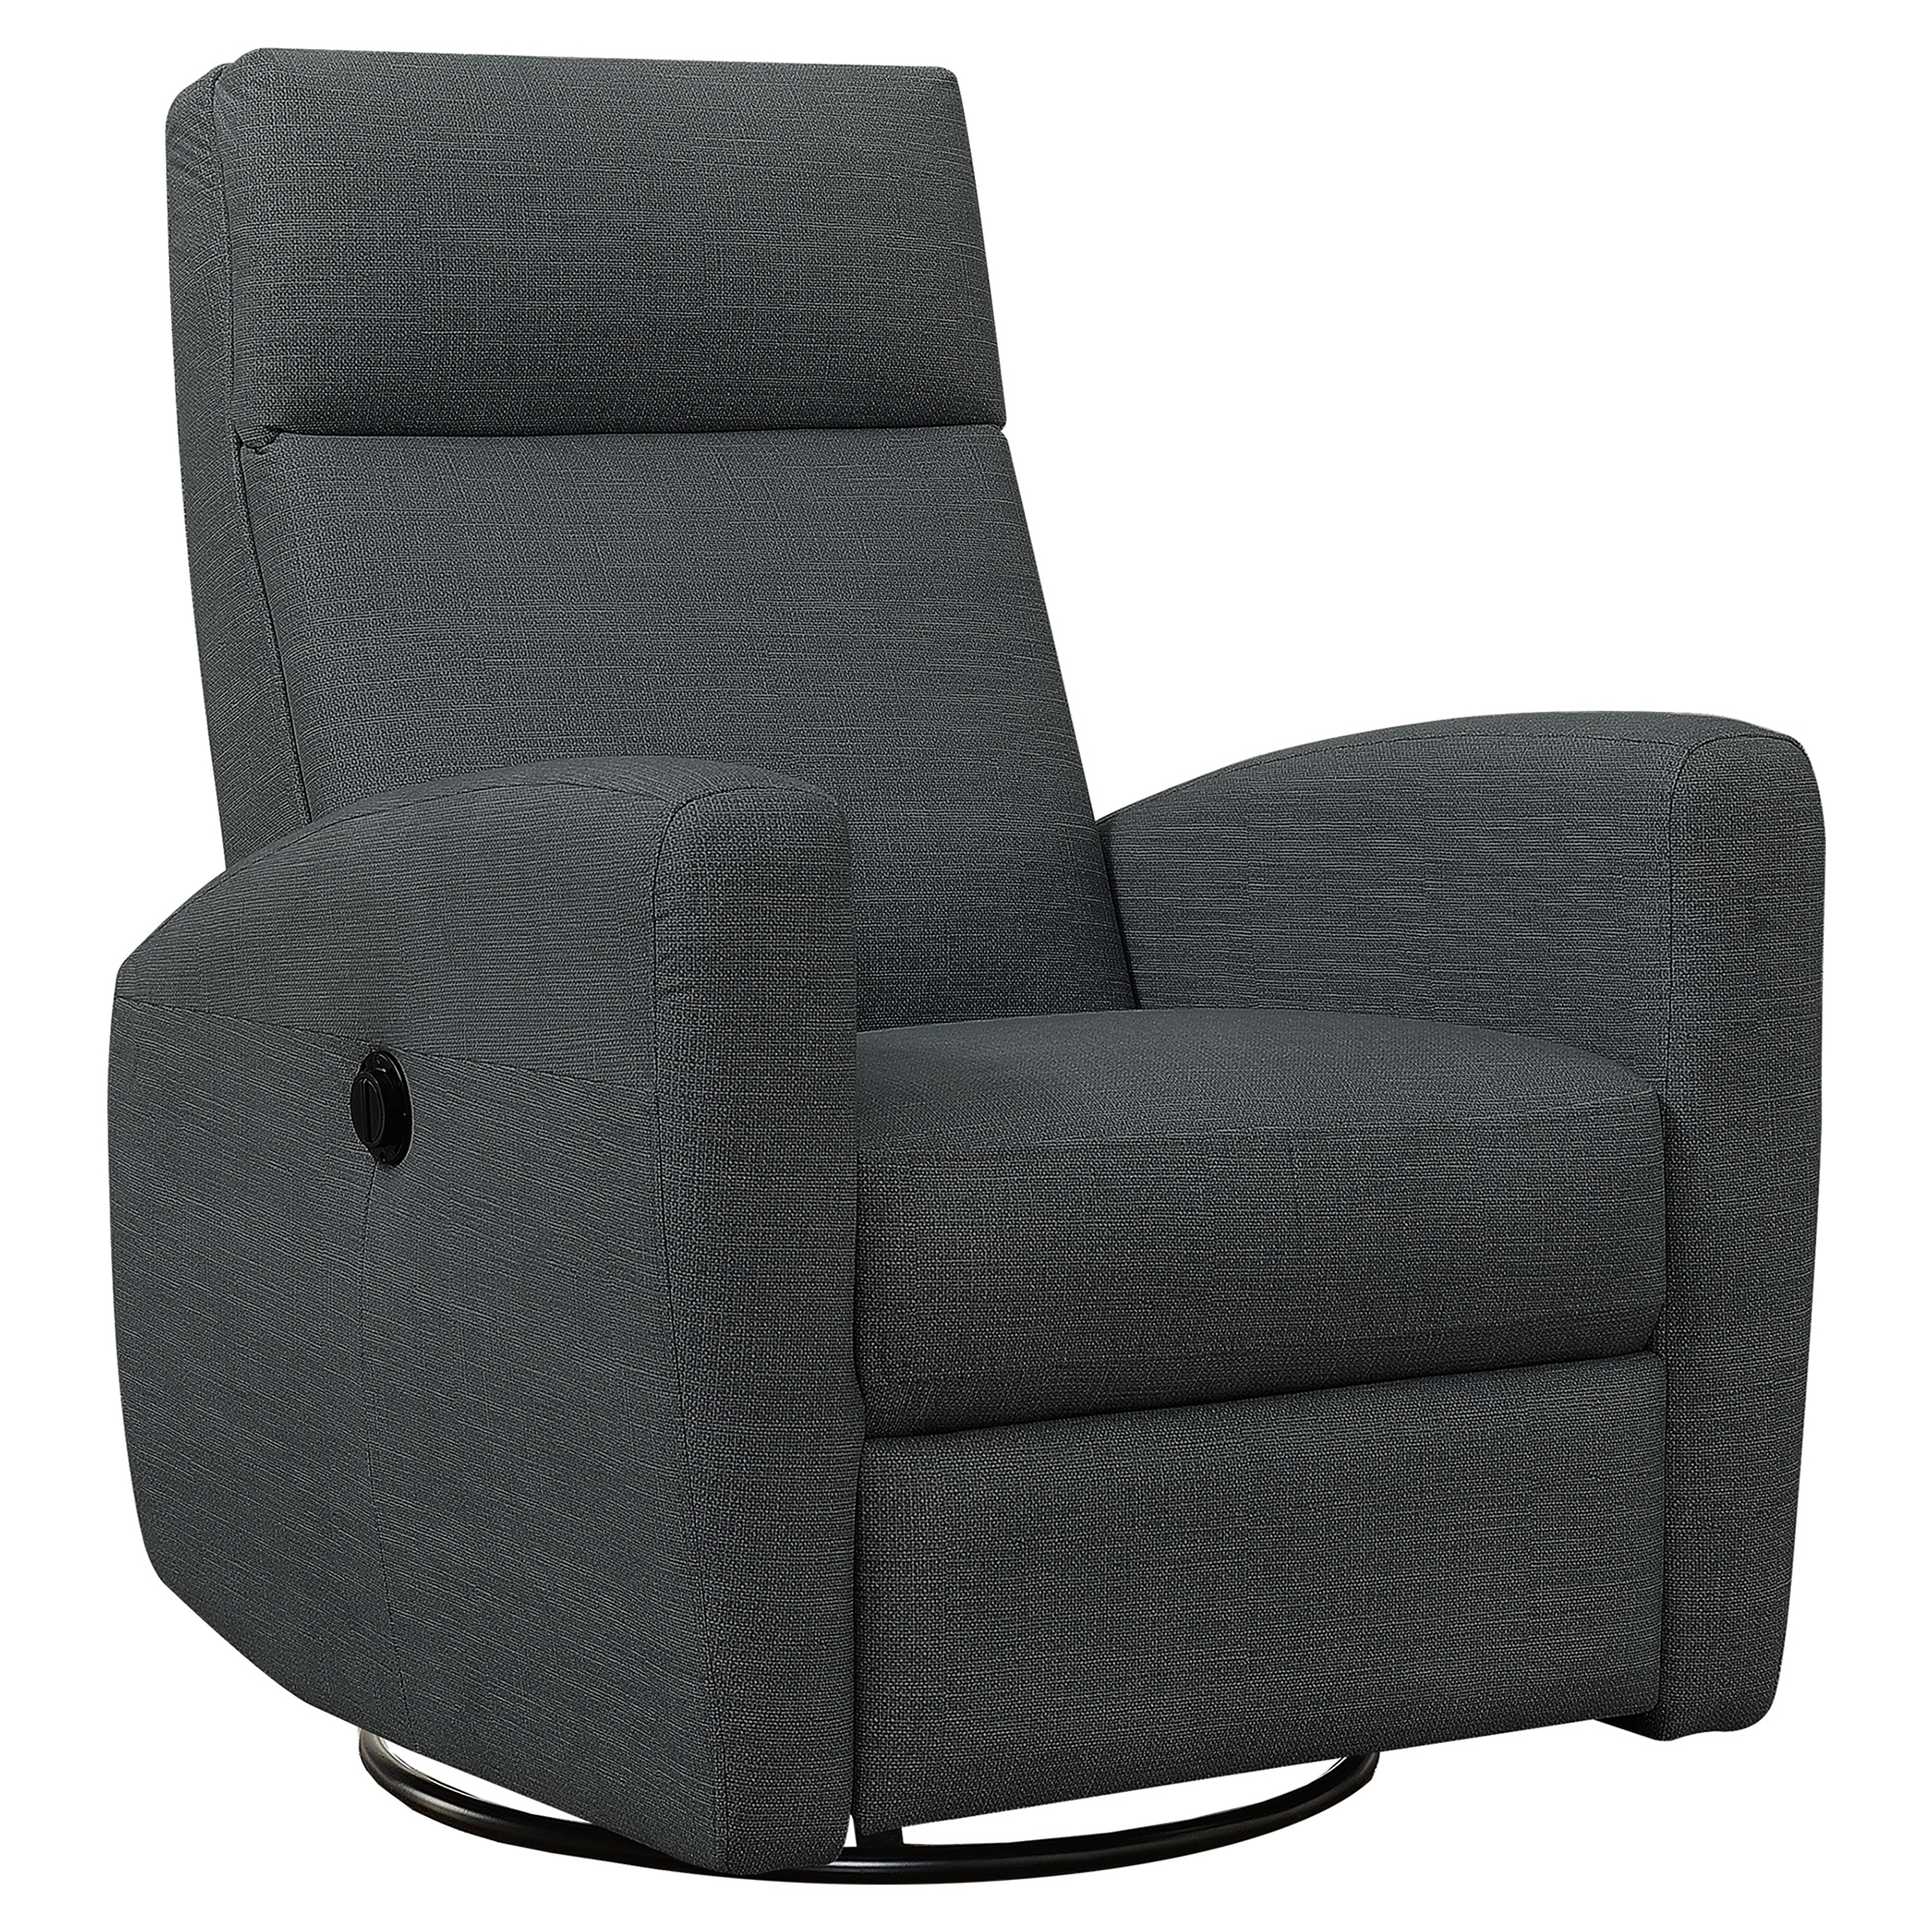 RECLINER - POWER SWIVEL GLIDER / CHARCOAL GREY FABRIC